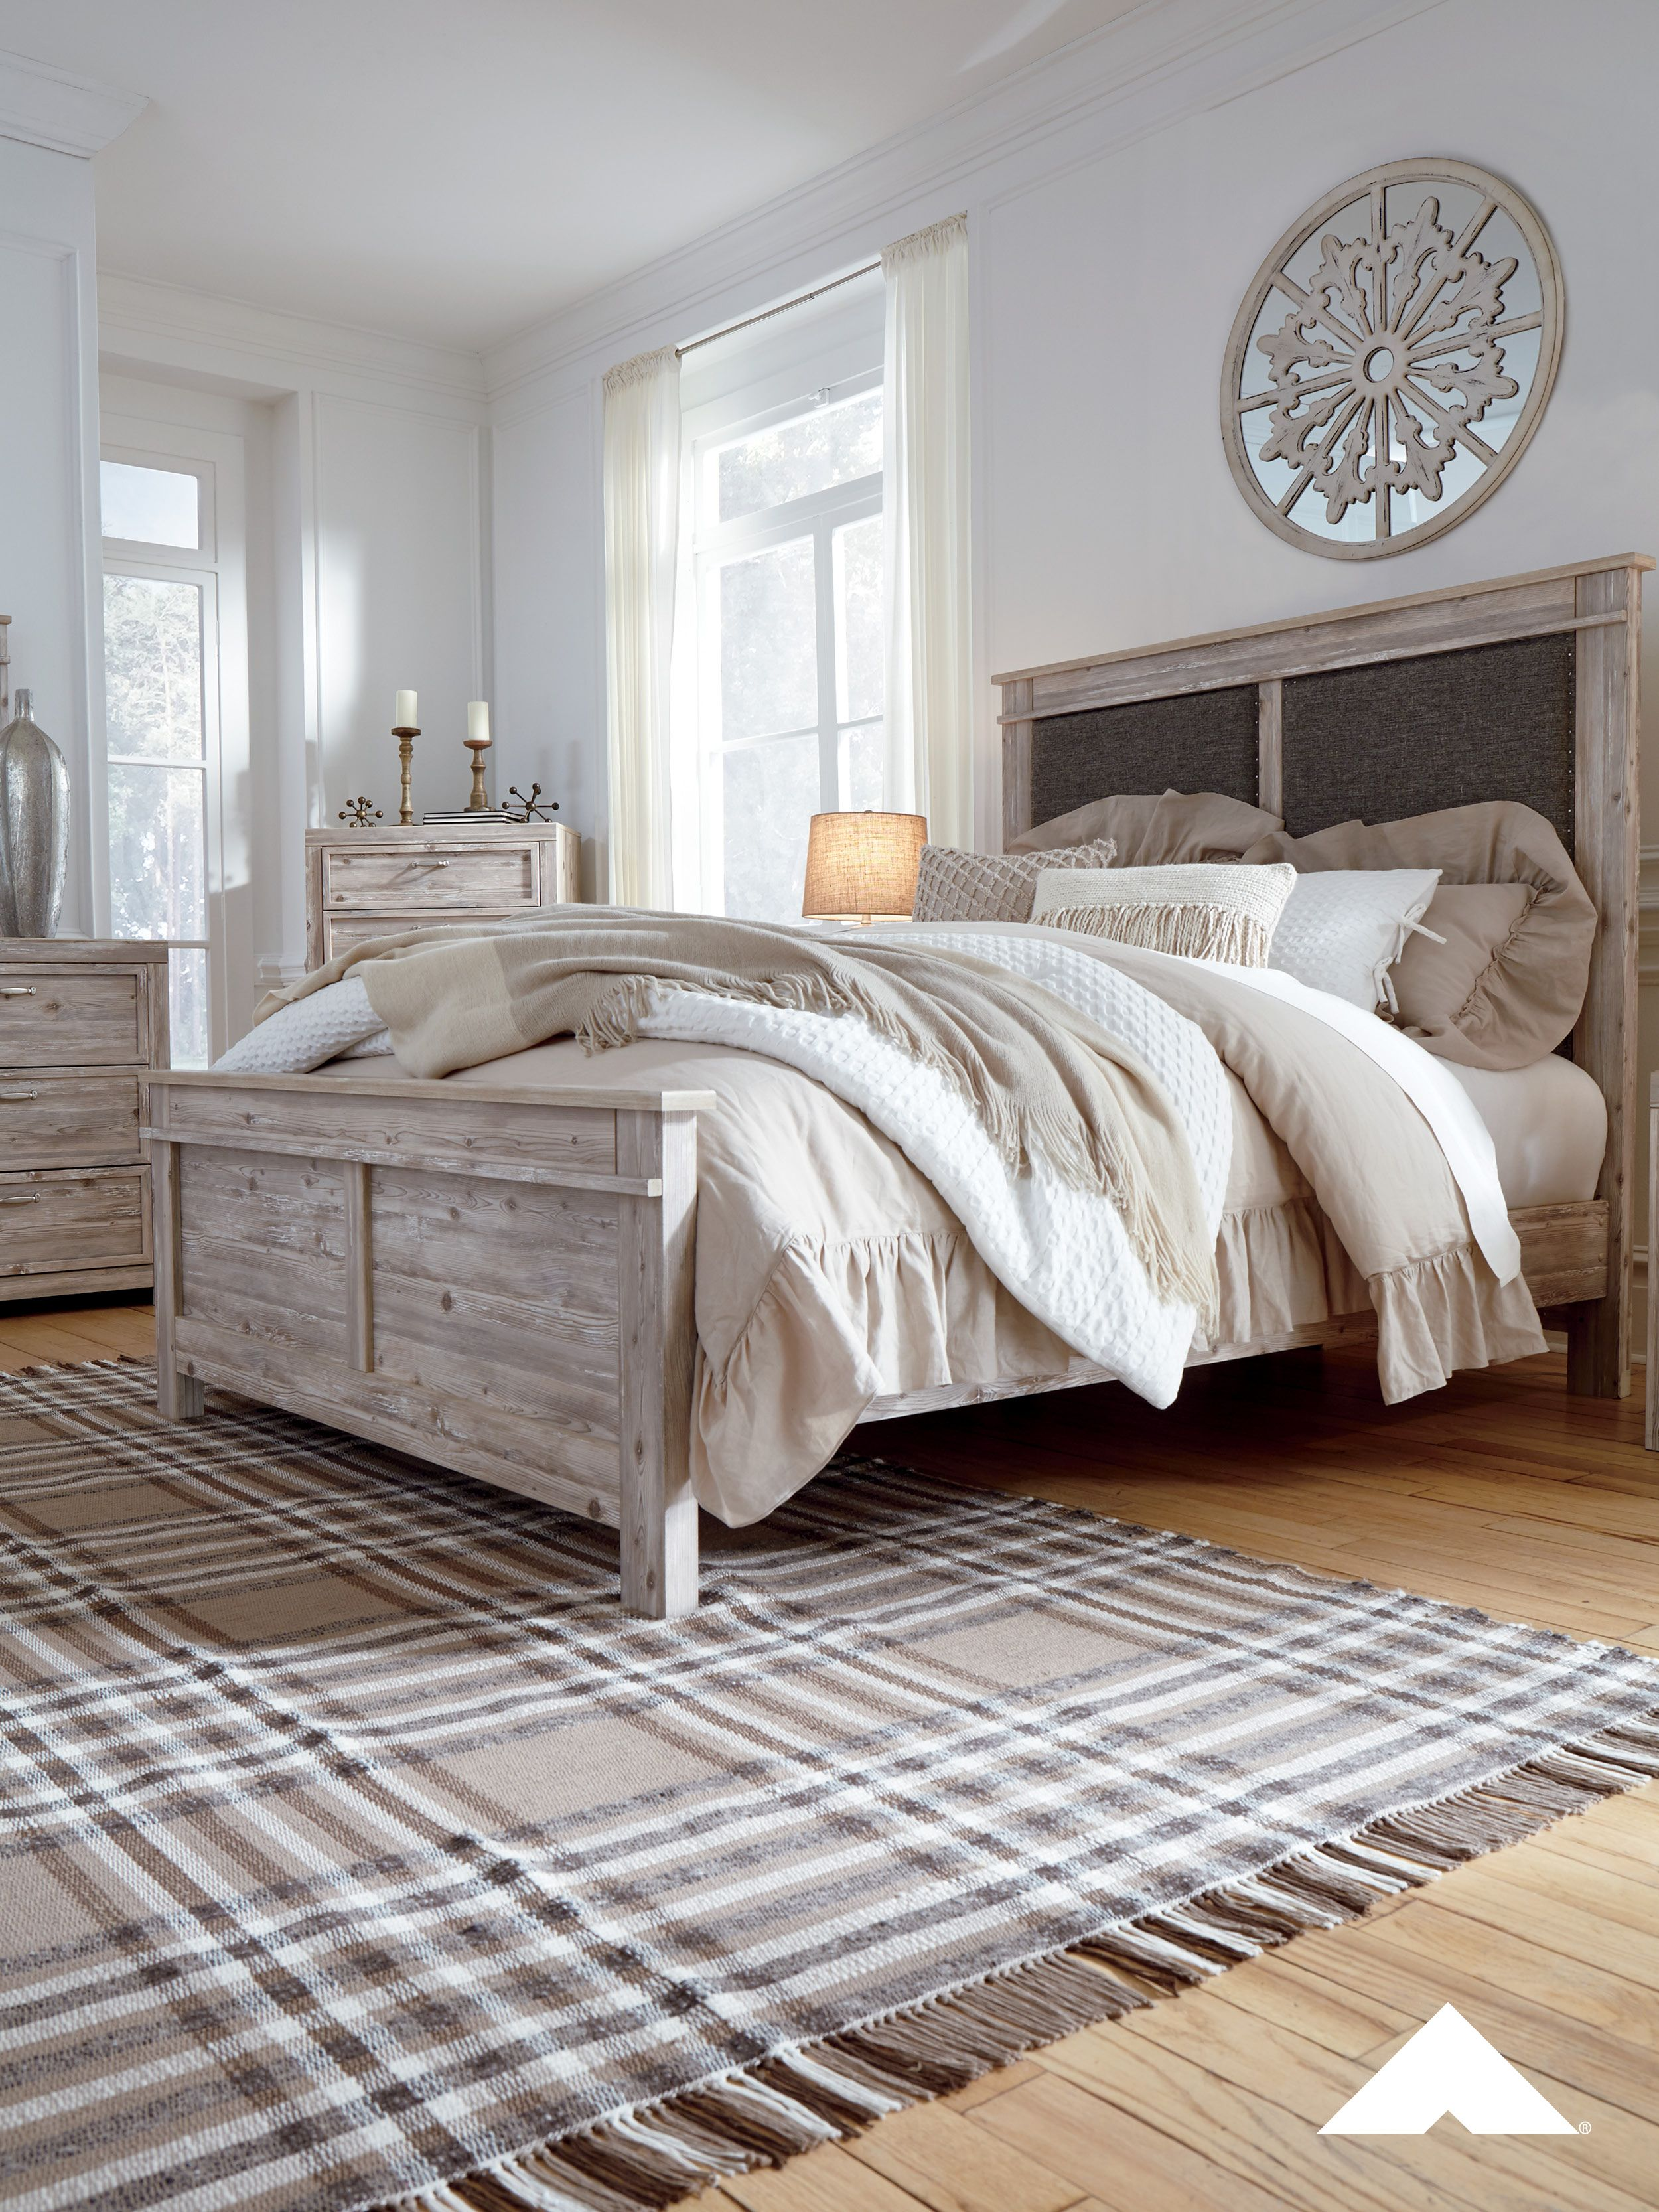 Willabry Bedroom Set by Ashley Furniture | Worn through ...